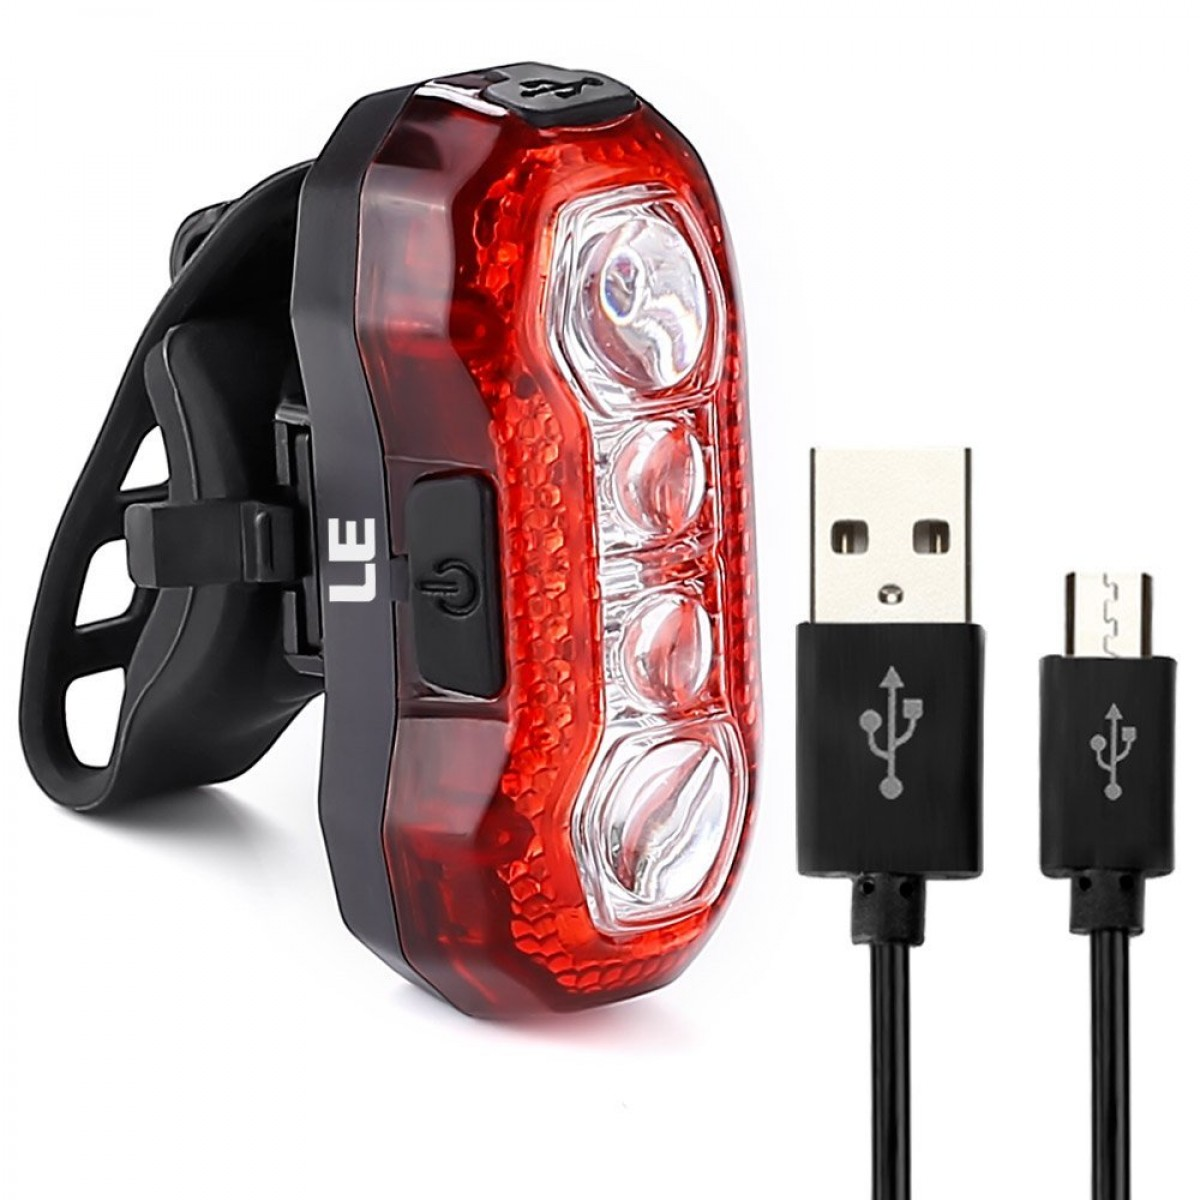 Lighting Ever Le Super Bright Bike Light Waterproof Cycling Usb Rechargeable Rear Tail